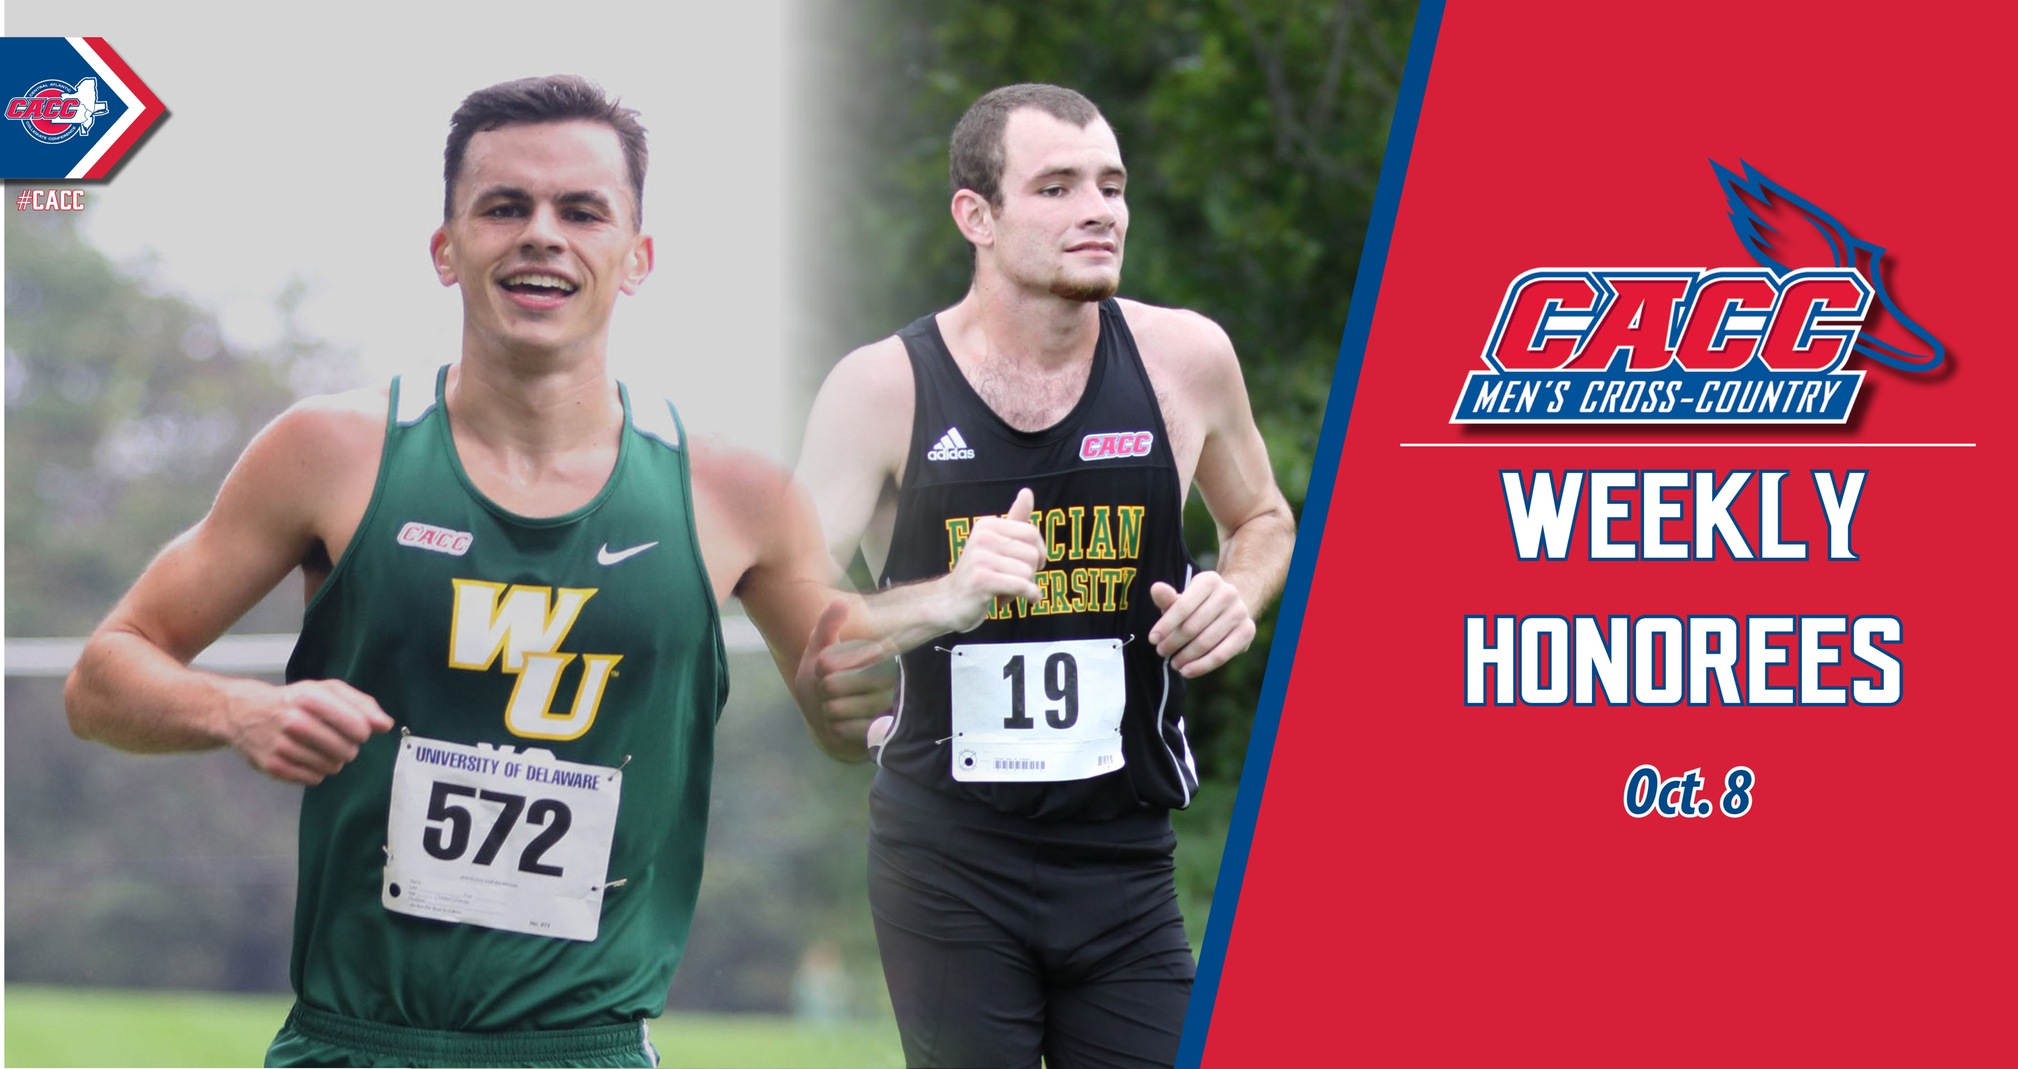 CACC Men's Cross Country Weekly Honorees (Oct. 8)